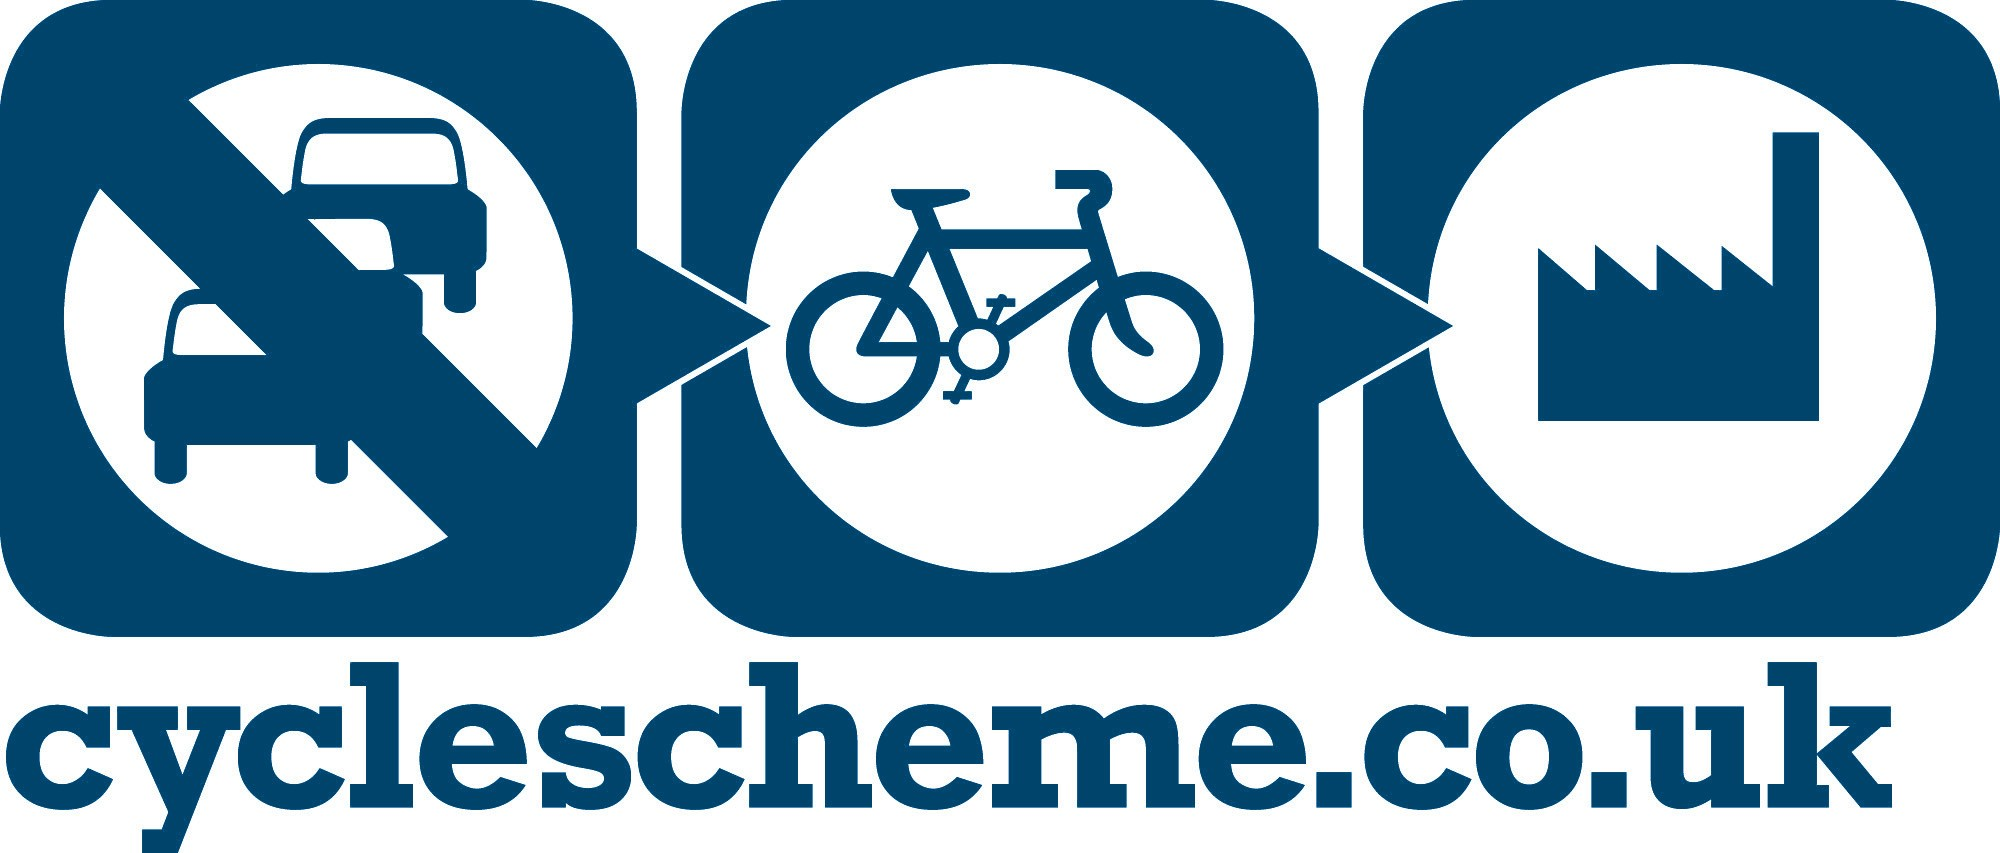 Cycle to work schemes mikes bikes aviemore.